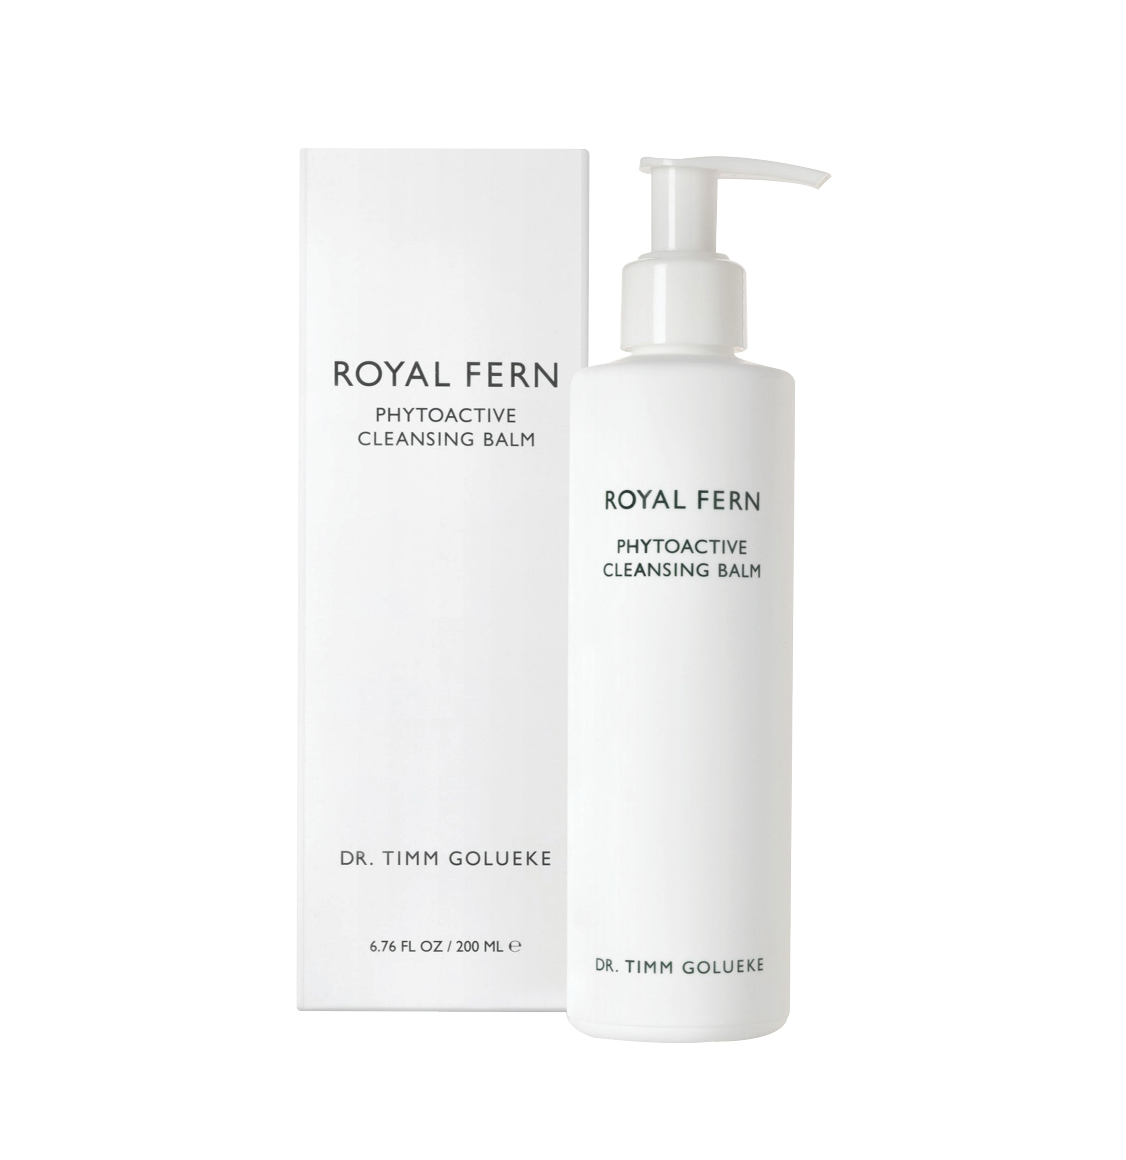 Royal Fern Phytoactive Cleansing Balm 200ml